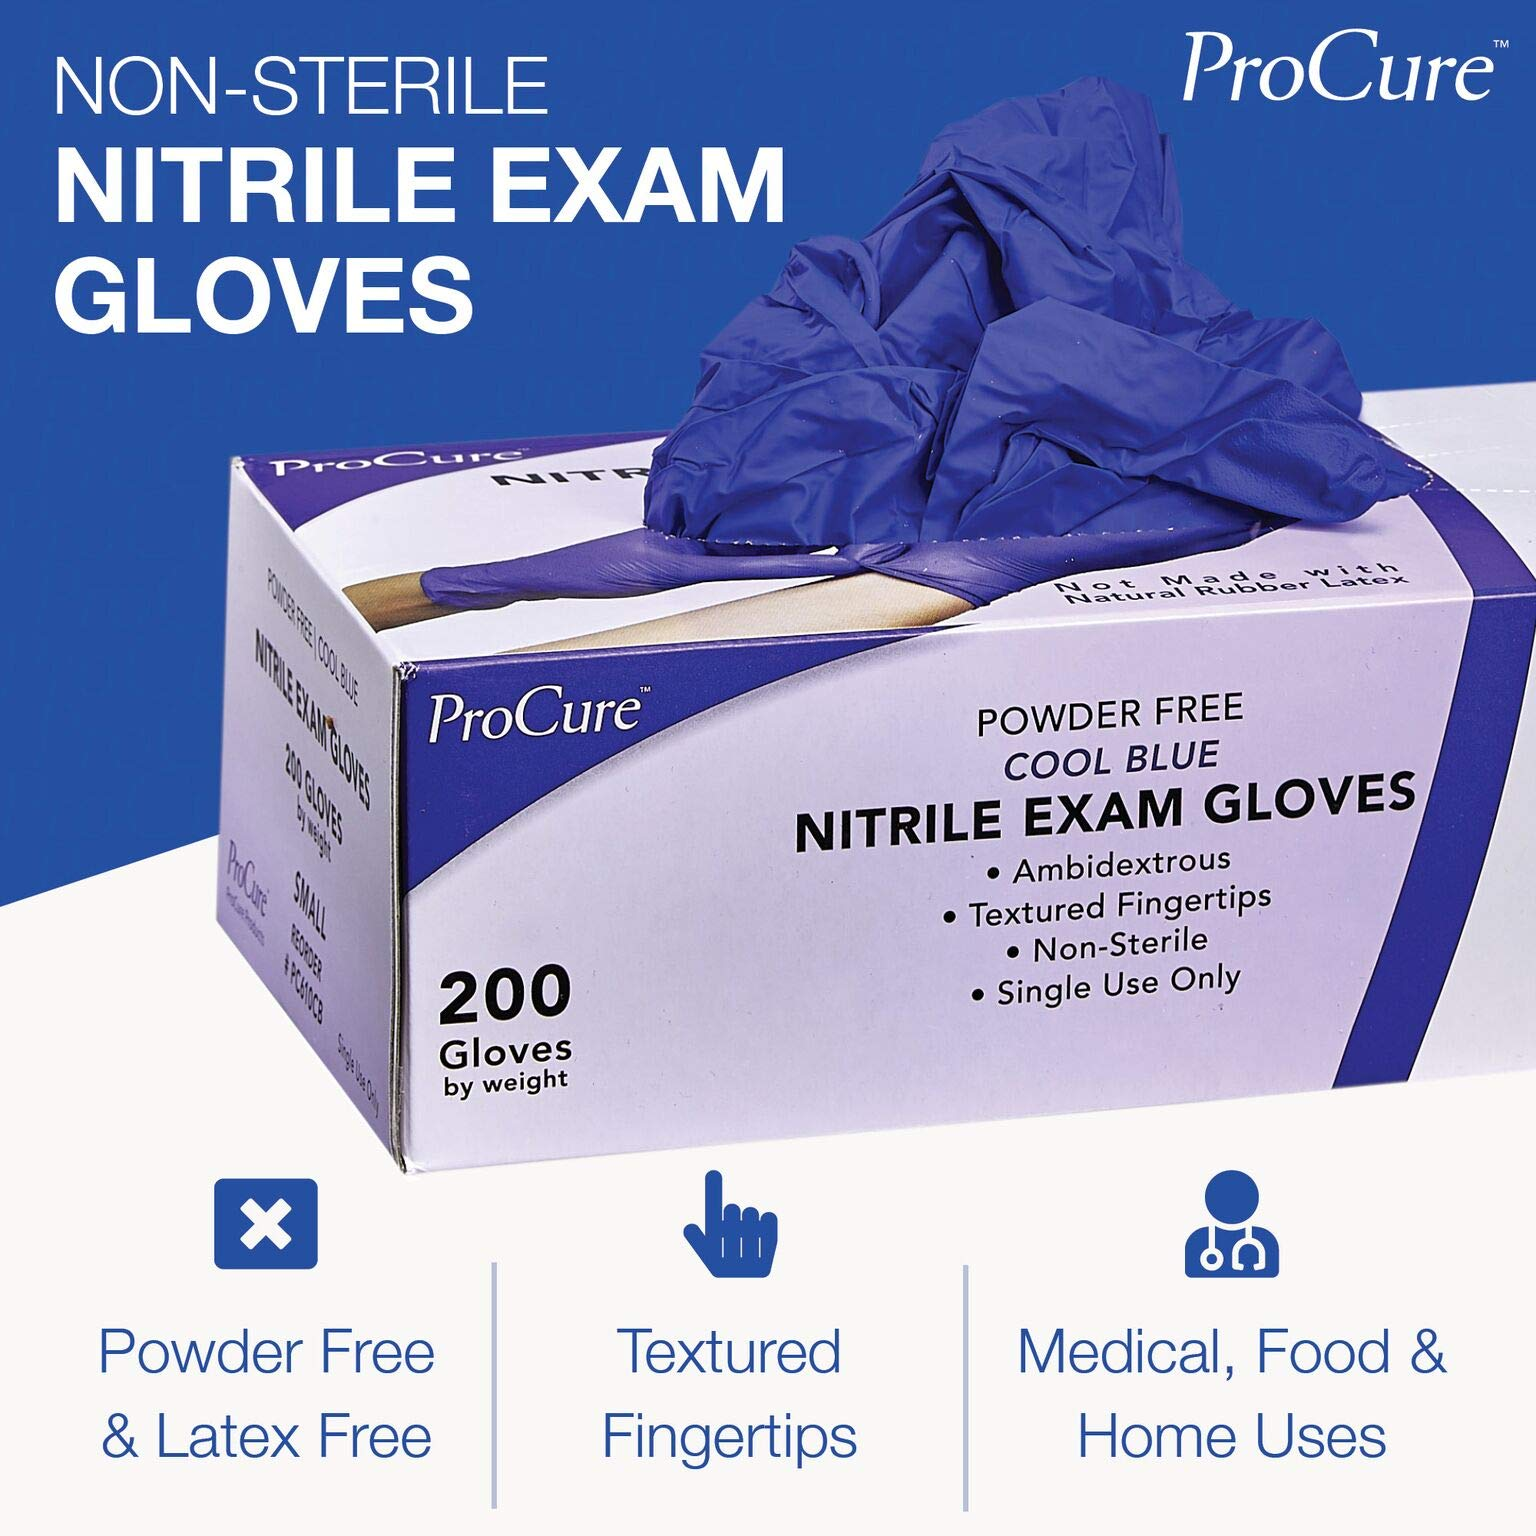 ProCure Disposable Nitrile Gloves – Powder Free, Rubber Latex Free, Medical Exam Grade, Non Sterile, Ambidextrous - Soft with Textured Tips – Cool Blue (Medium, 2000 Case) by Medacure (Image #3)